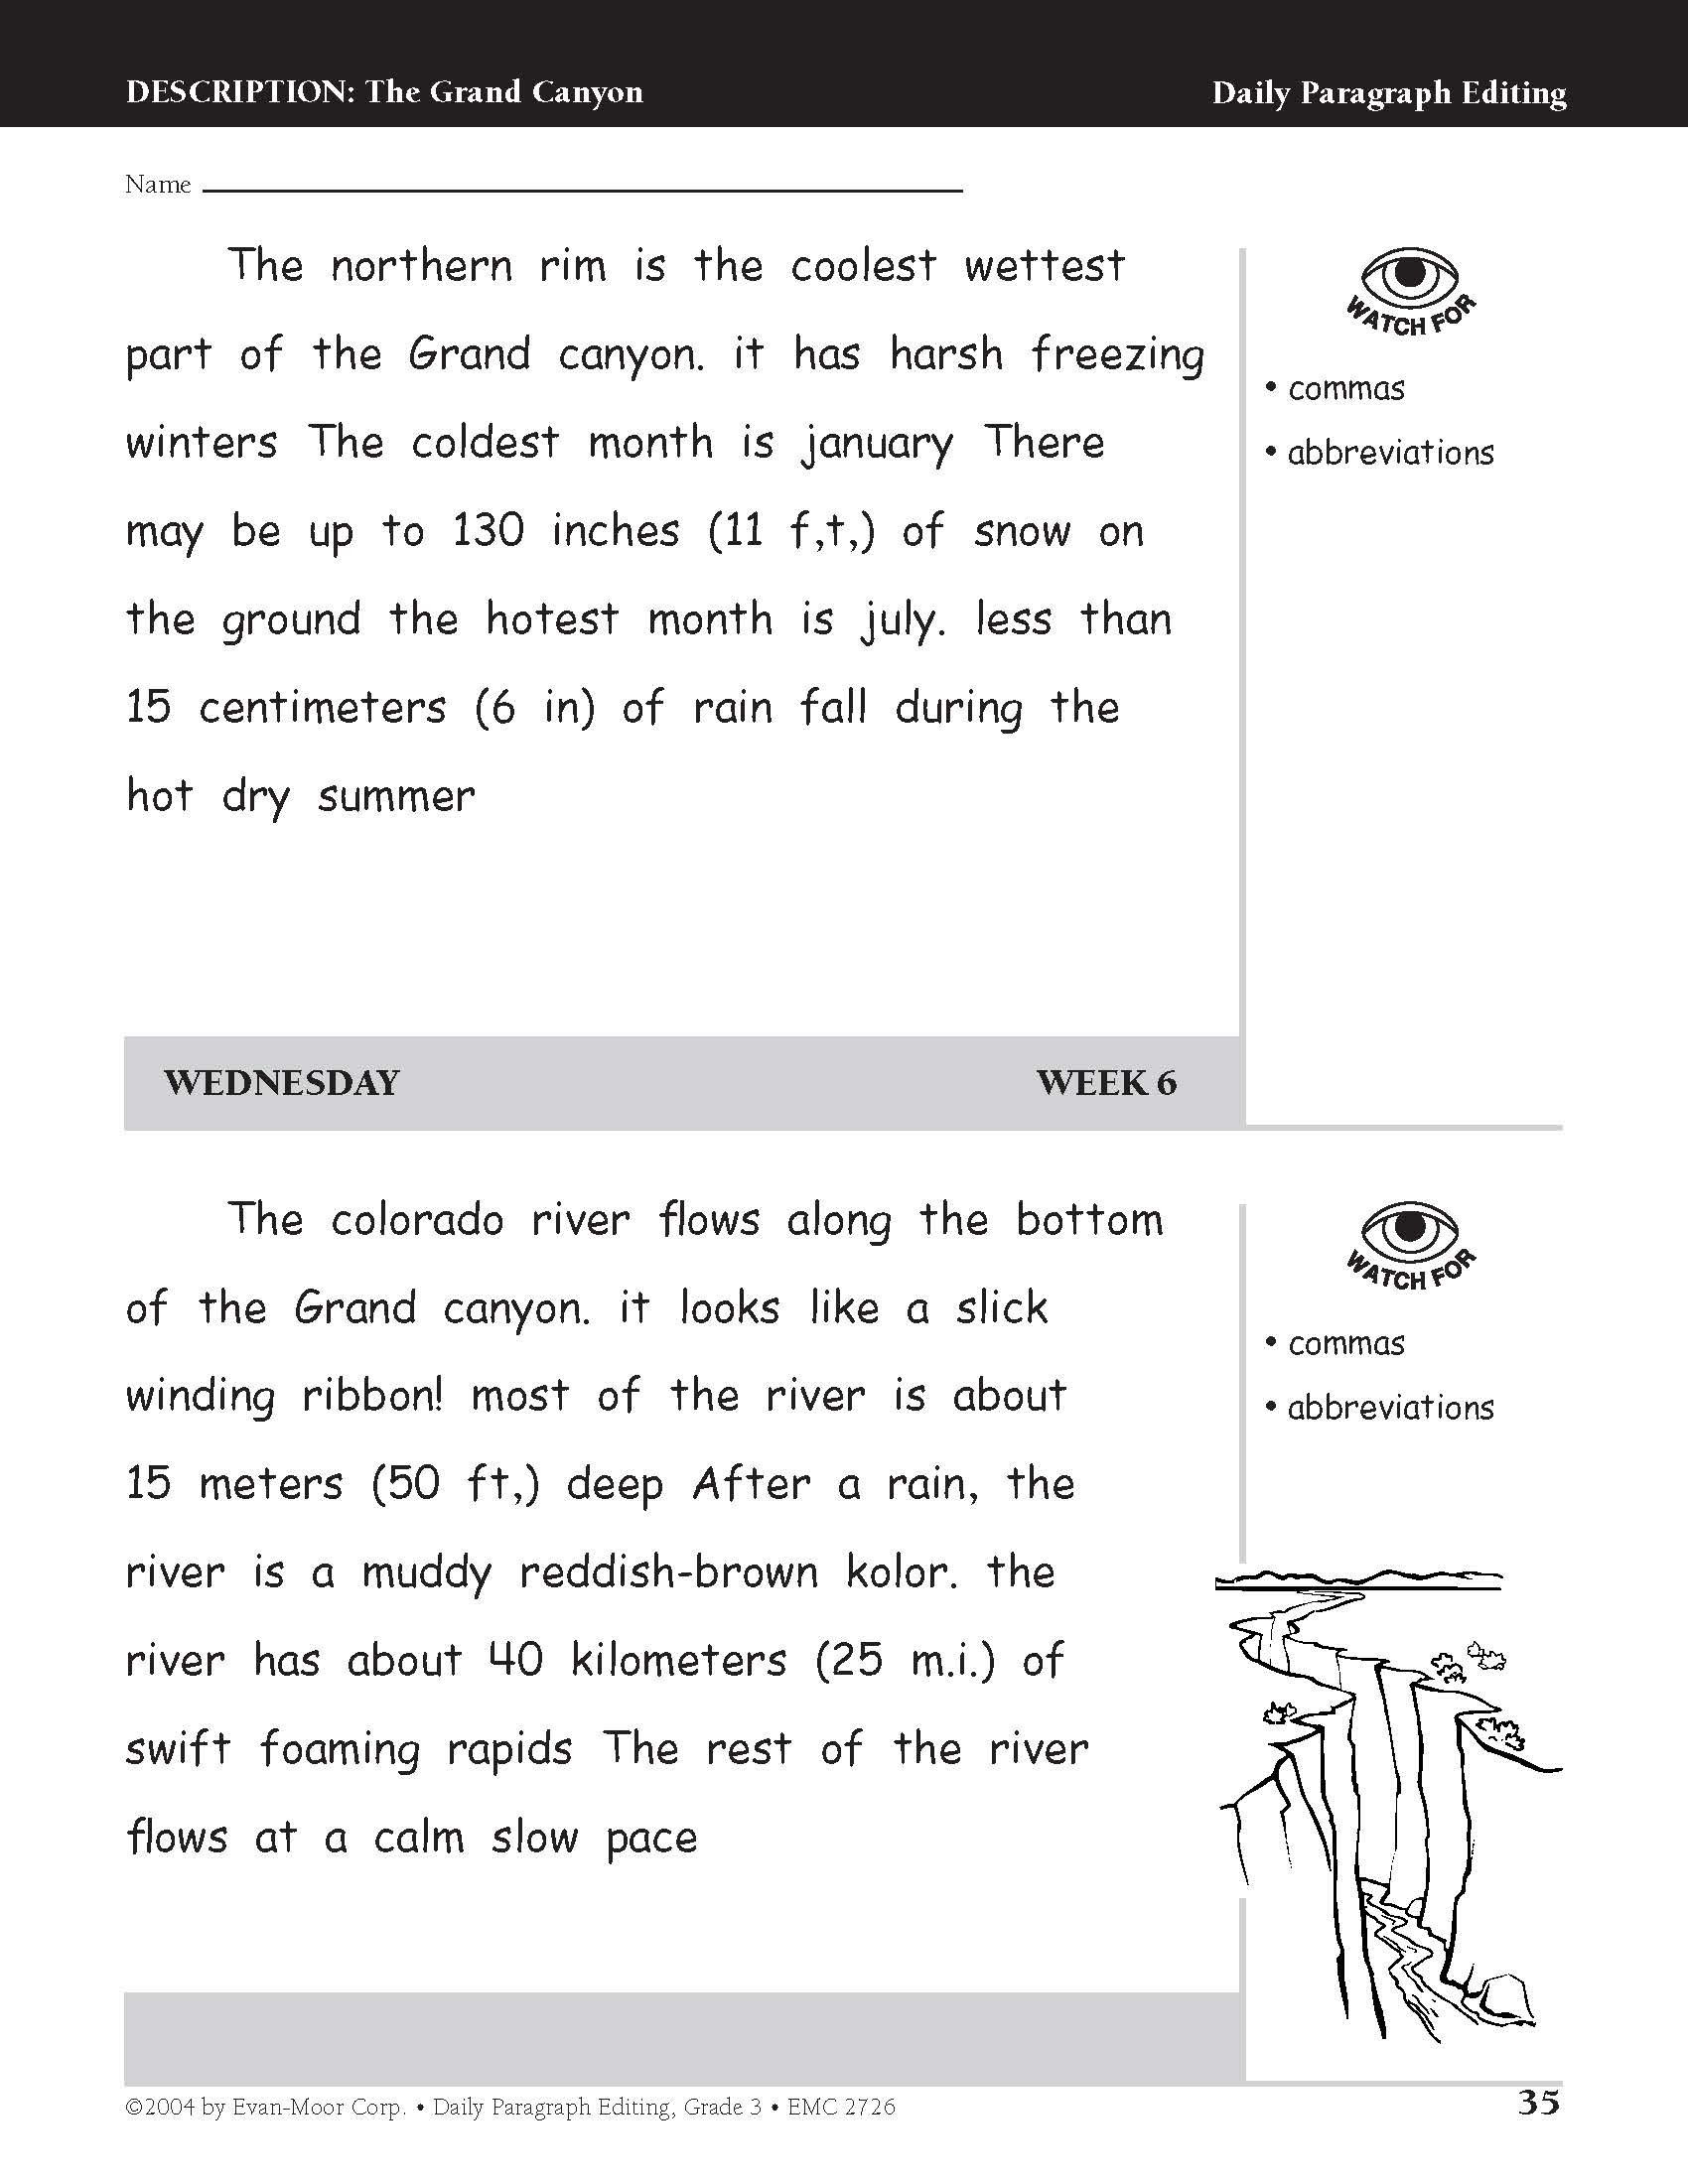 Editing Sentences 3rd Grade Amazon Daily Paragraph Editing Grade 3